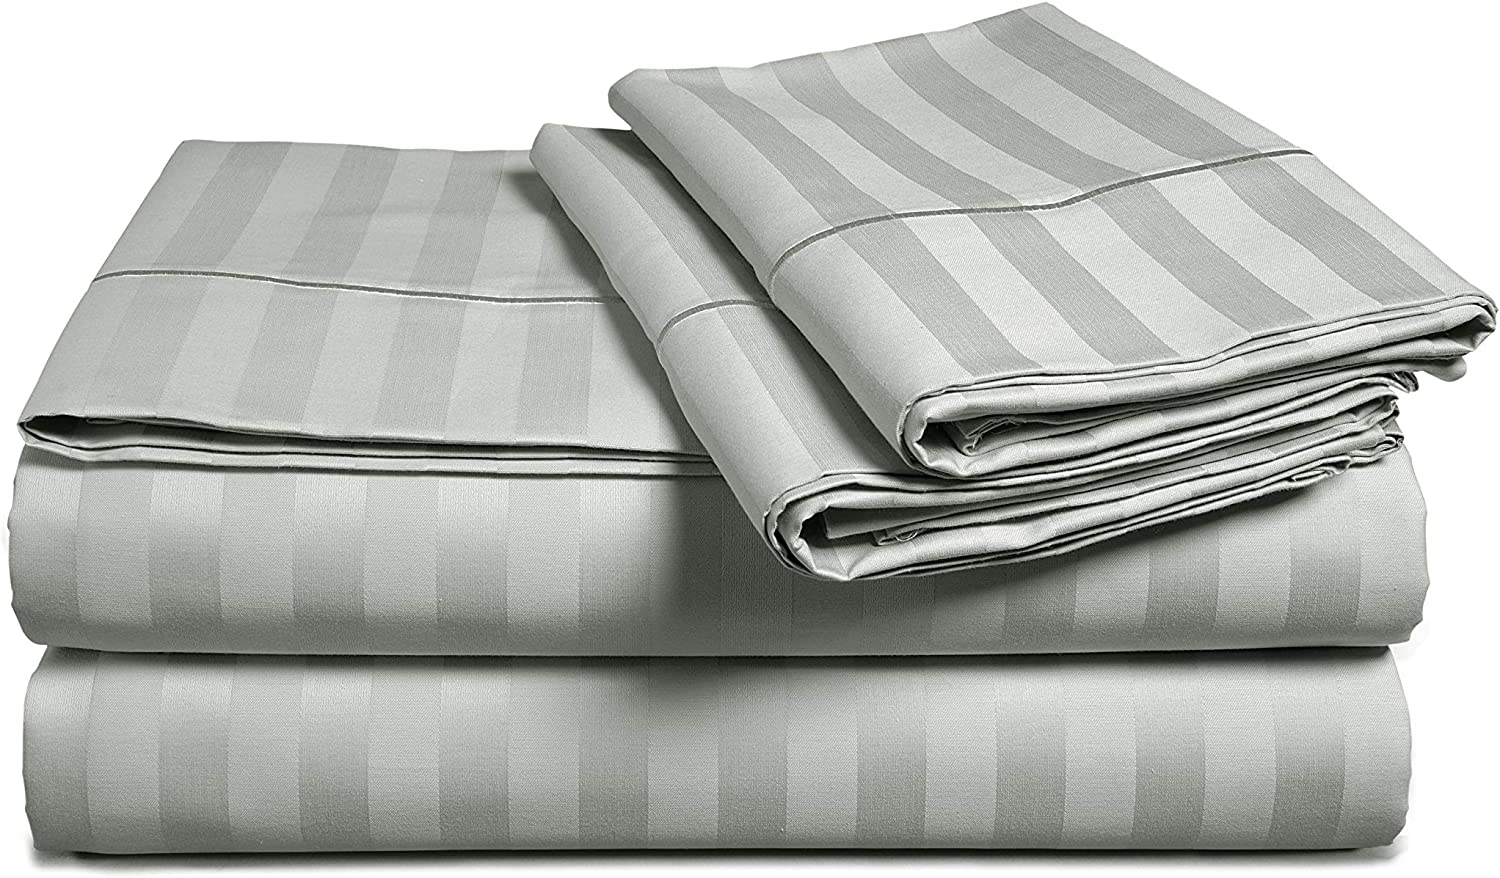 Chateau Home Hotel Collection - Luxury 500 Thread Count 100% Egyptian Cotton Damask Stripe Deep Pocket Super Soft Sateen Weave Sheet Set, Mega Sale Lowest Prices (Cal King, Silver)